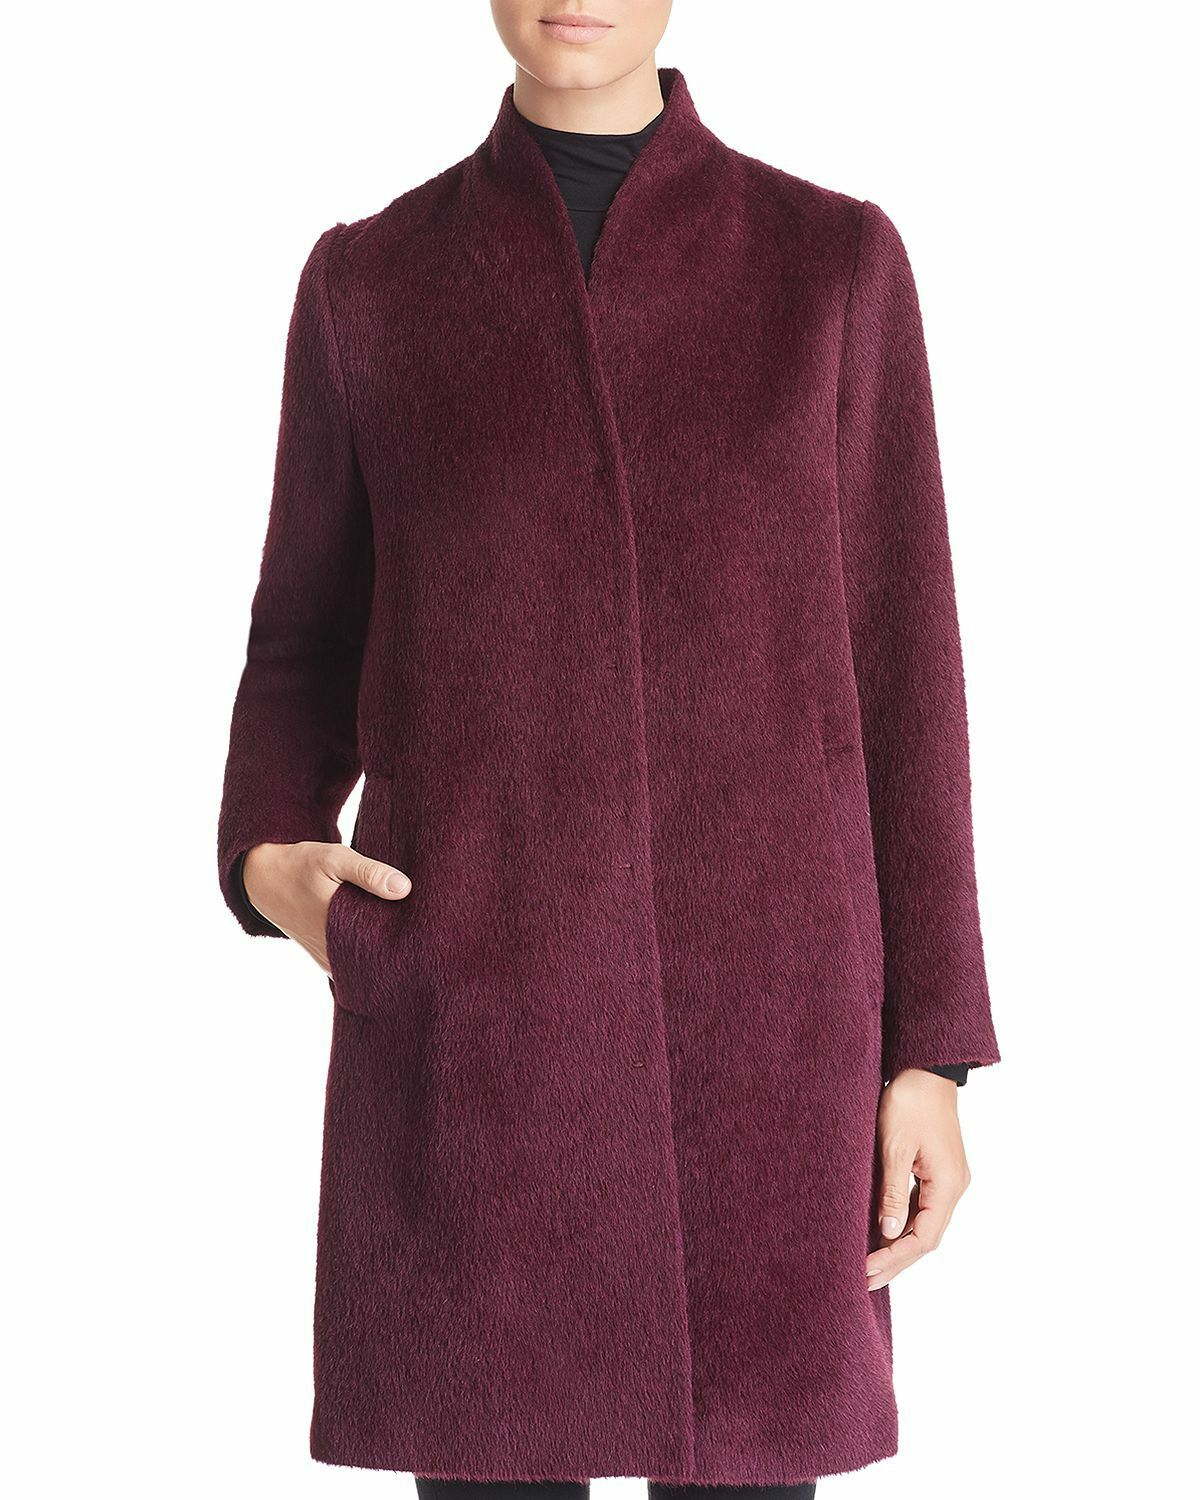 EILEEN FISHER Stand Collar Textured Knee Length Coat Raisinette Sz XLRG Peru NWT